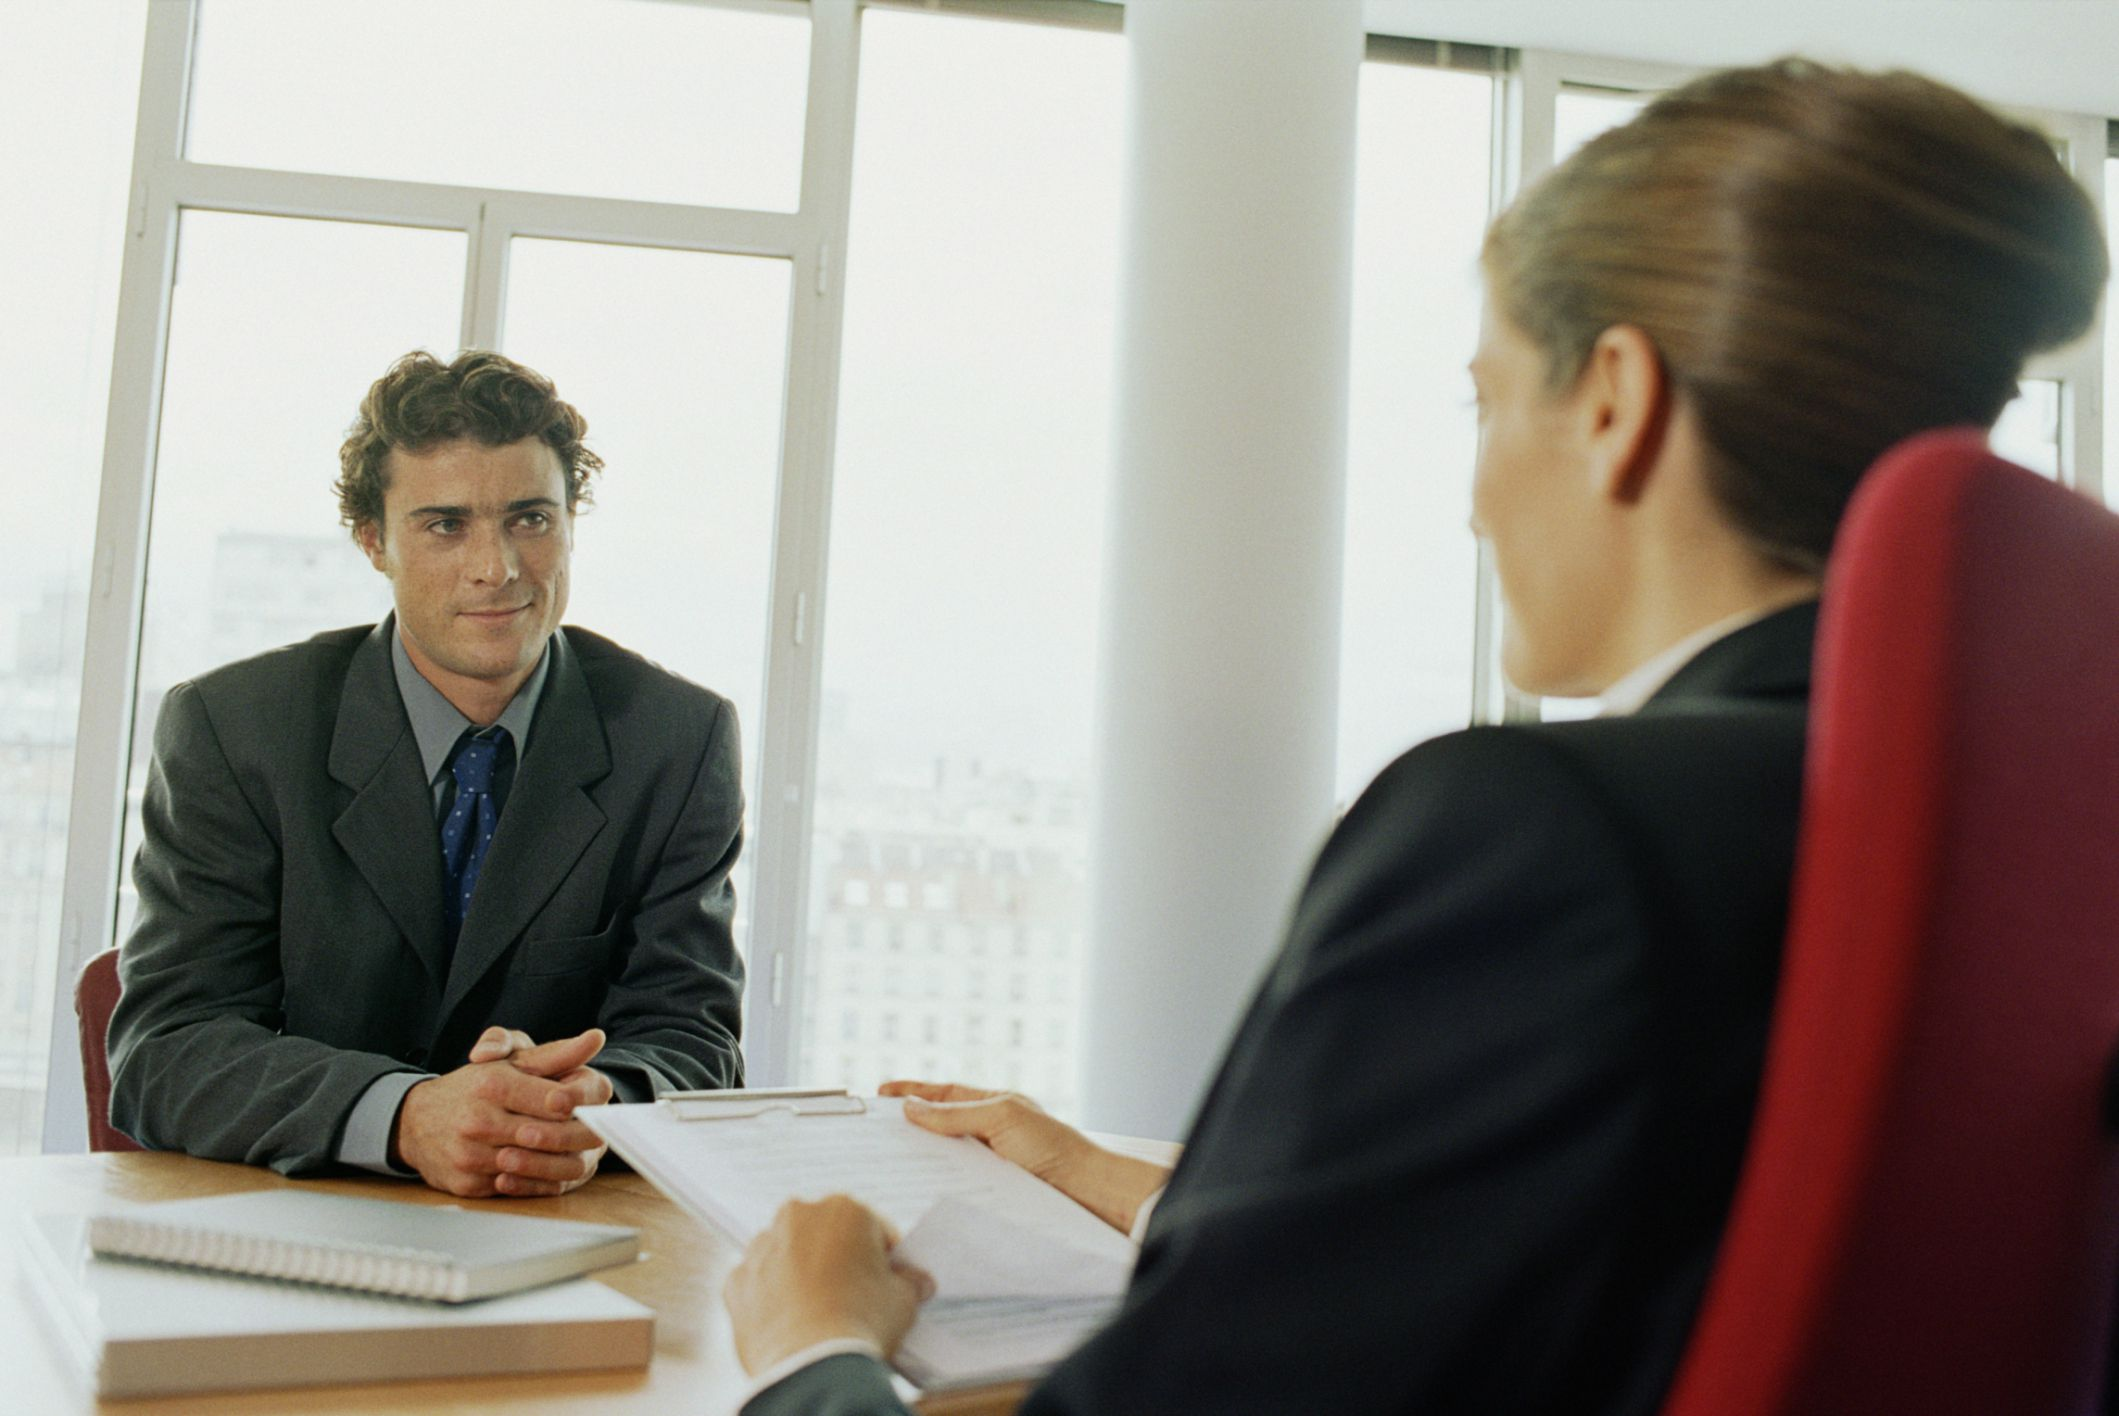 best sales interview questions and answers - Office Assistant Interview Questions And Answers